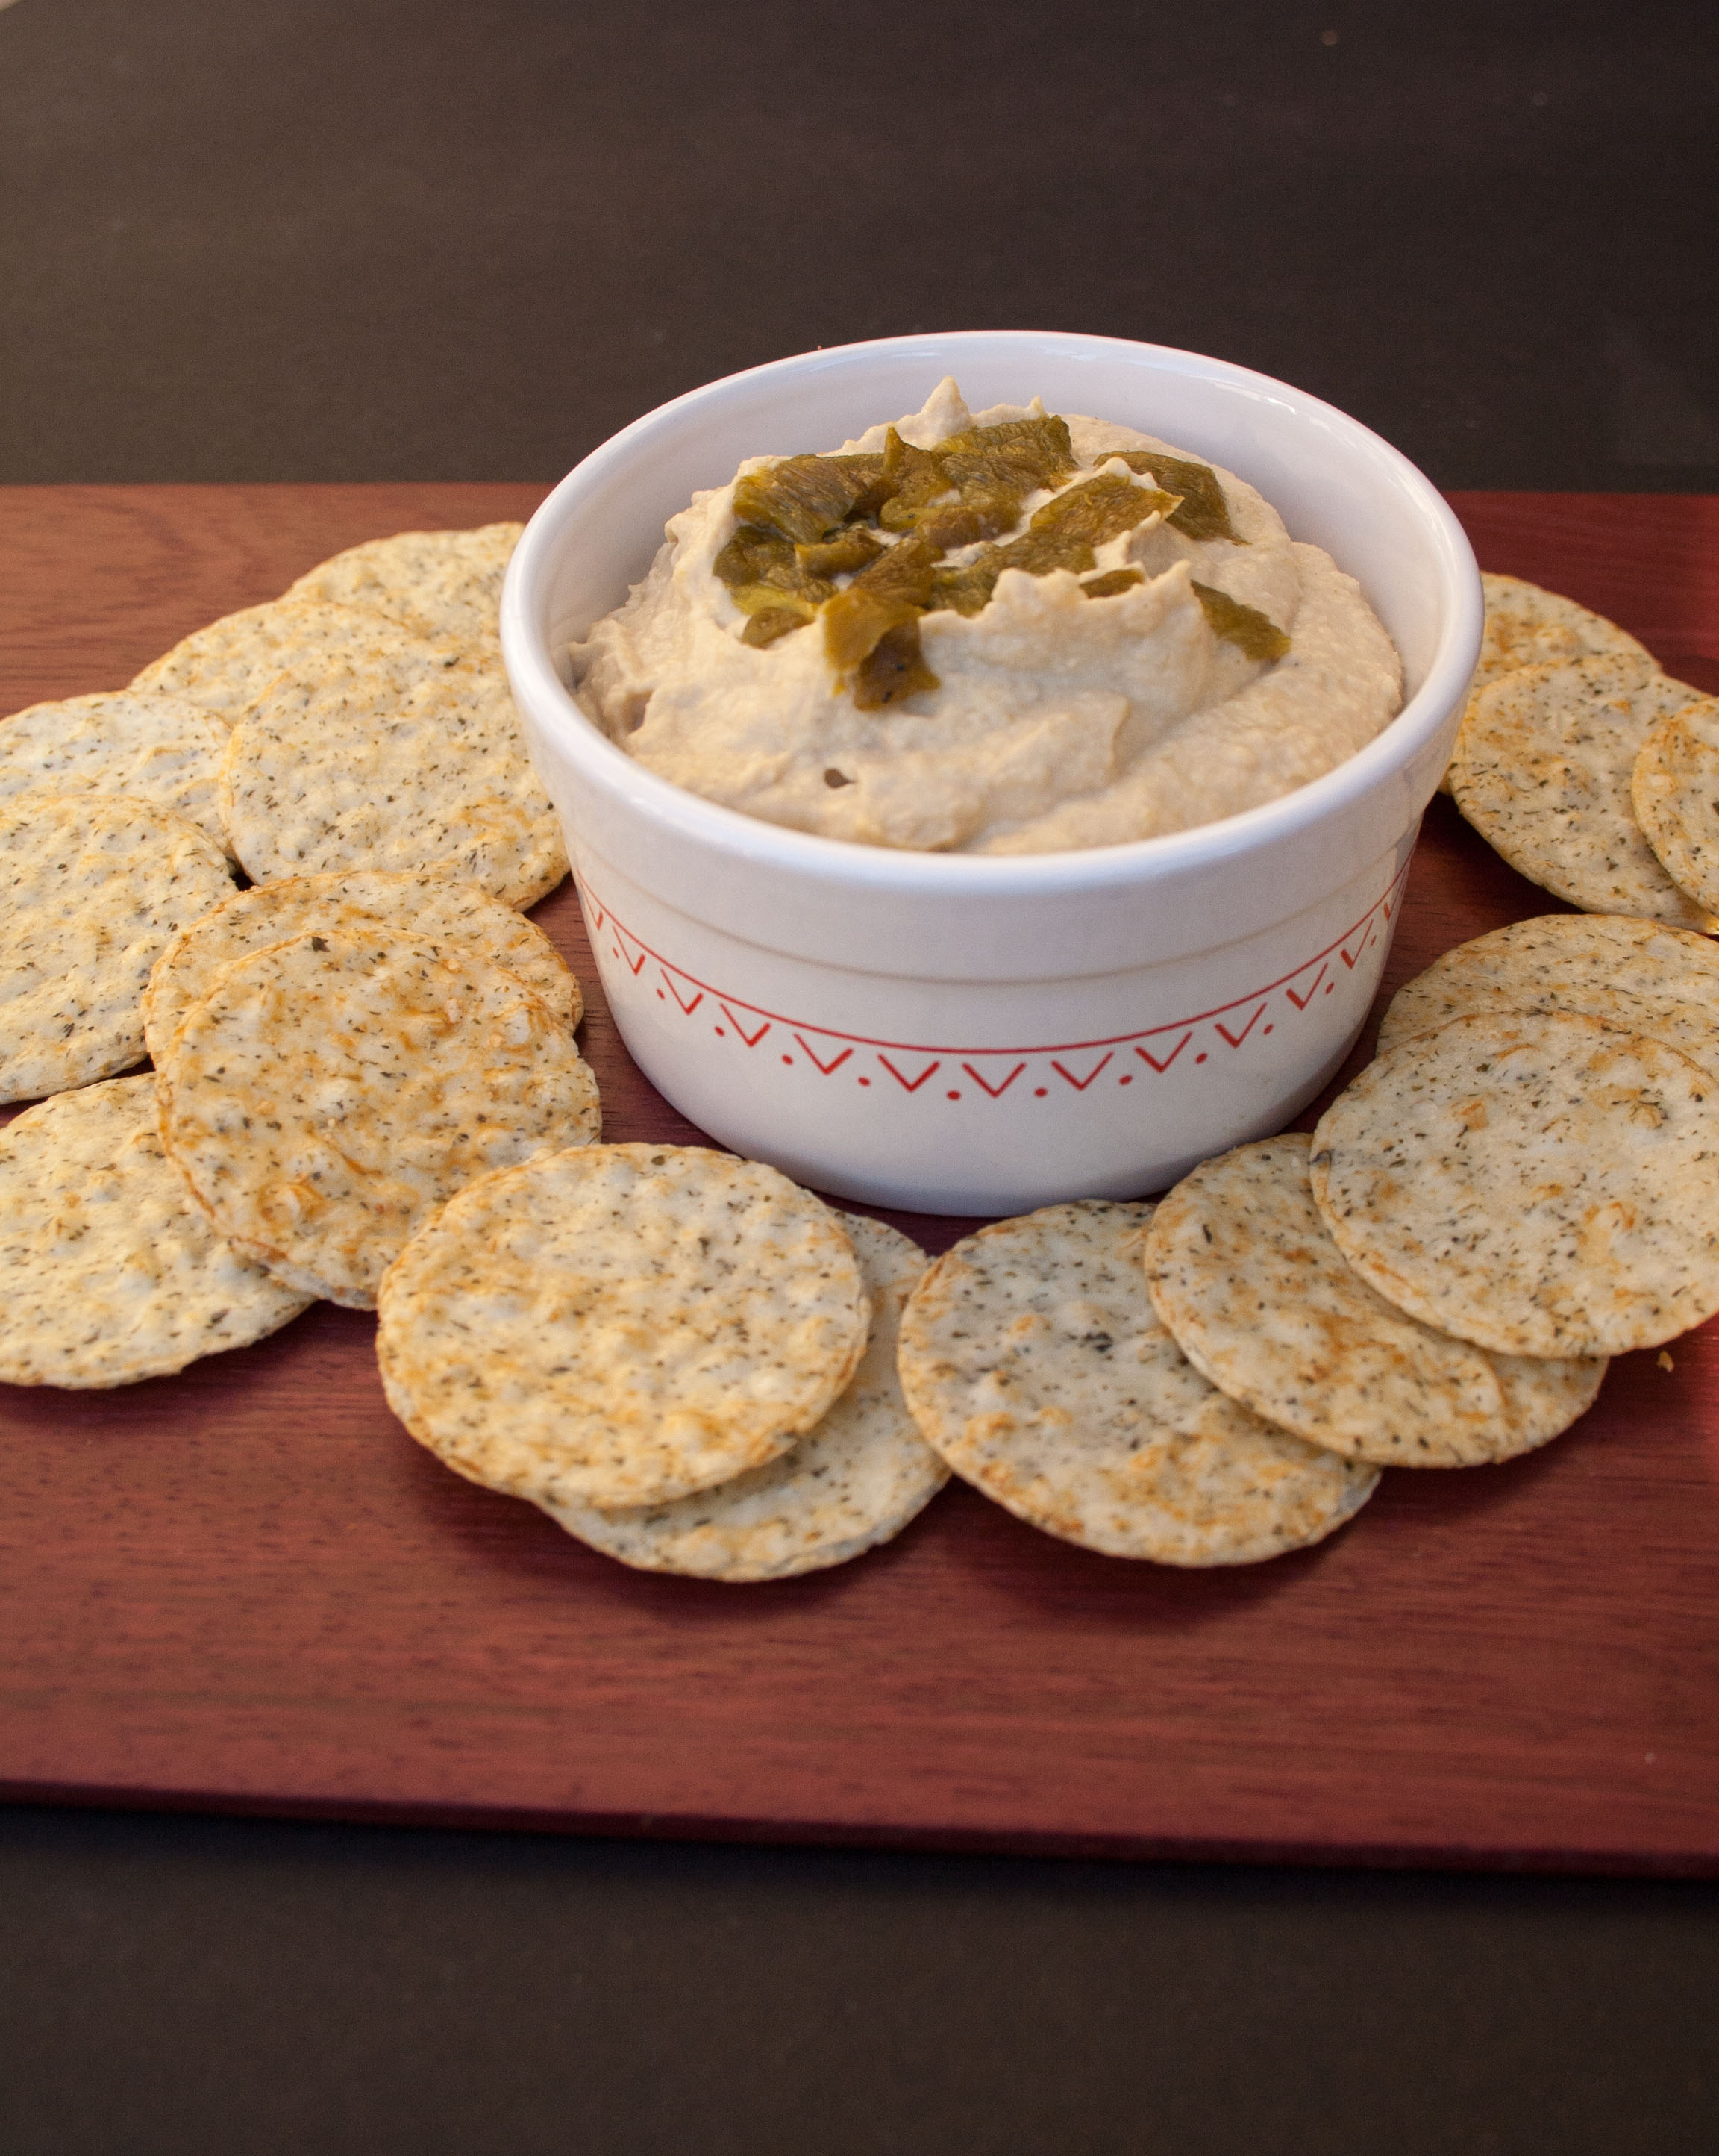 Roasted Hatch Chile Hummus (vegan, gluten free) -This spicy dip will be the hit of the party! Don't be surprised when your guests ask for more!